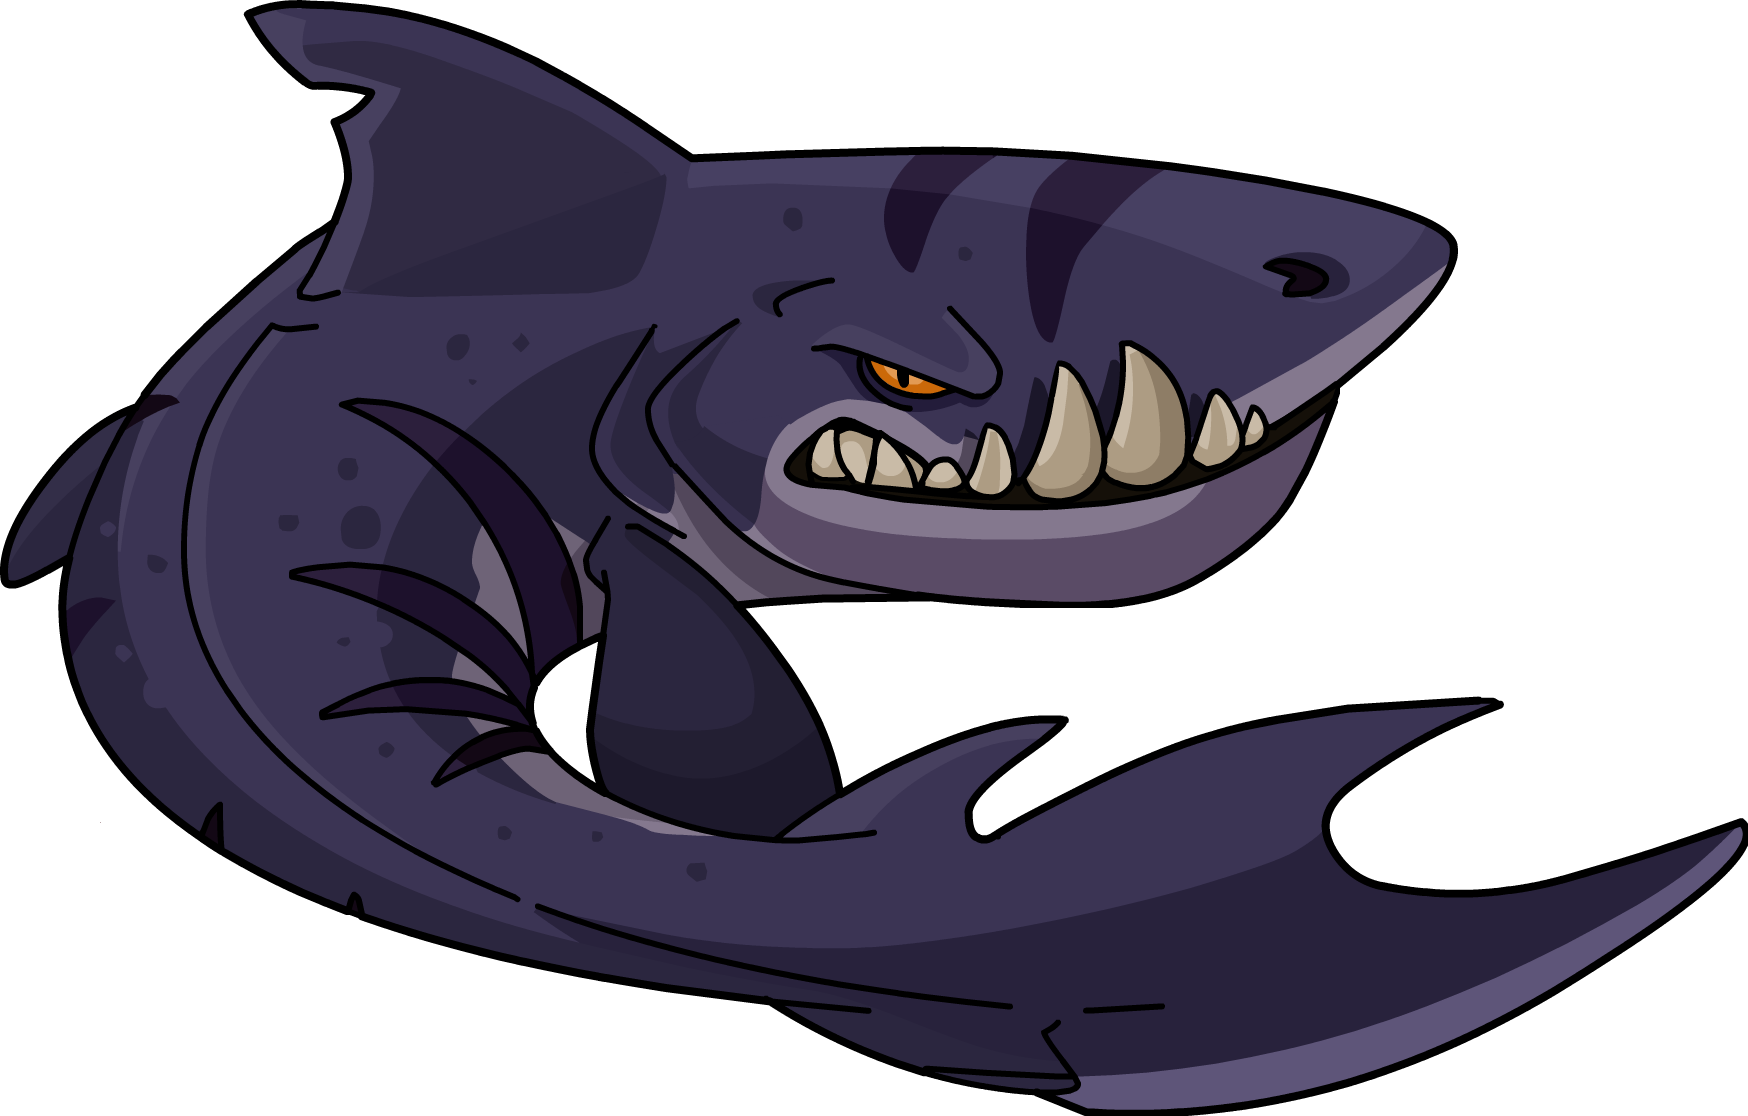 Mouth clipart simple mouth. Megalodon club penguin wiki